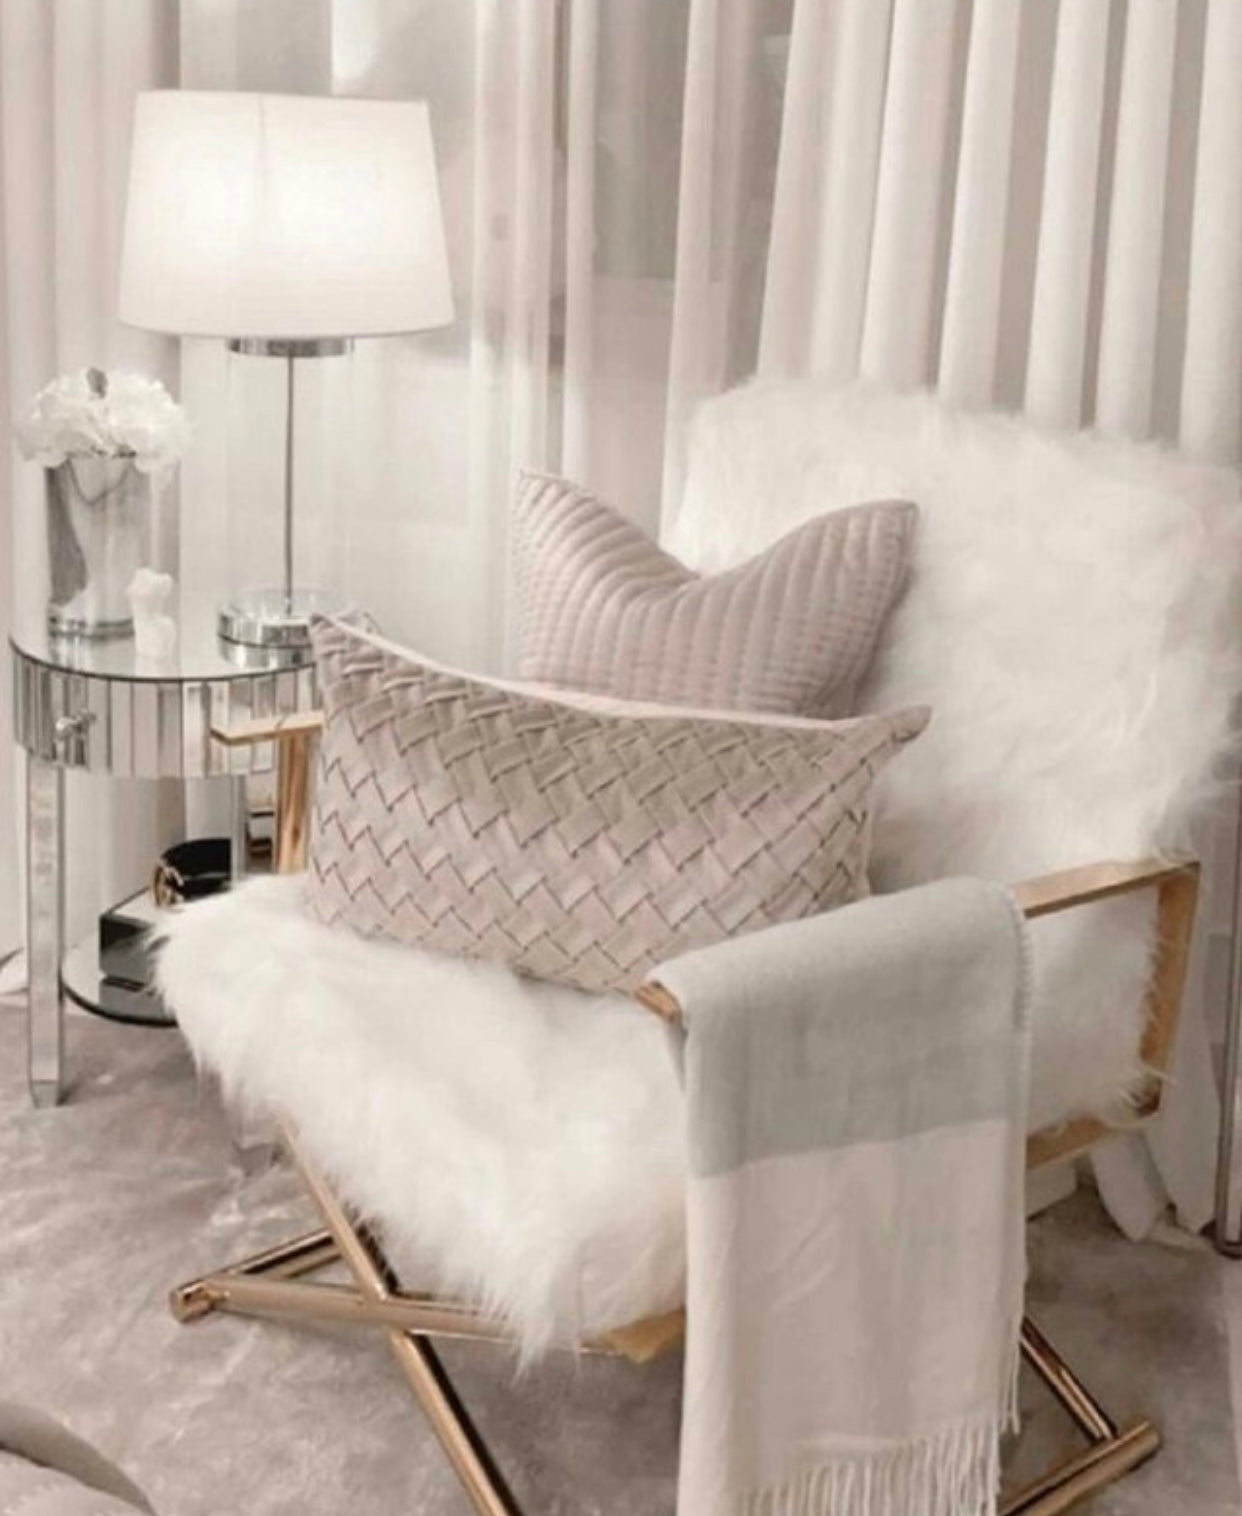 Faux sheepskin fur directors chair dressing room chair White and Gold